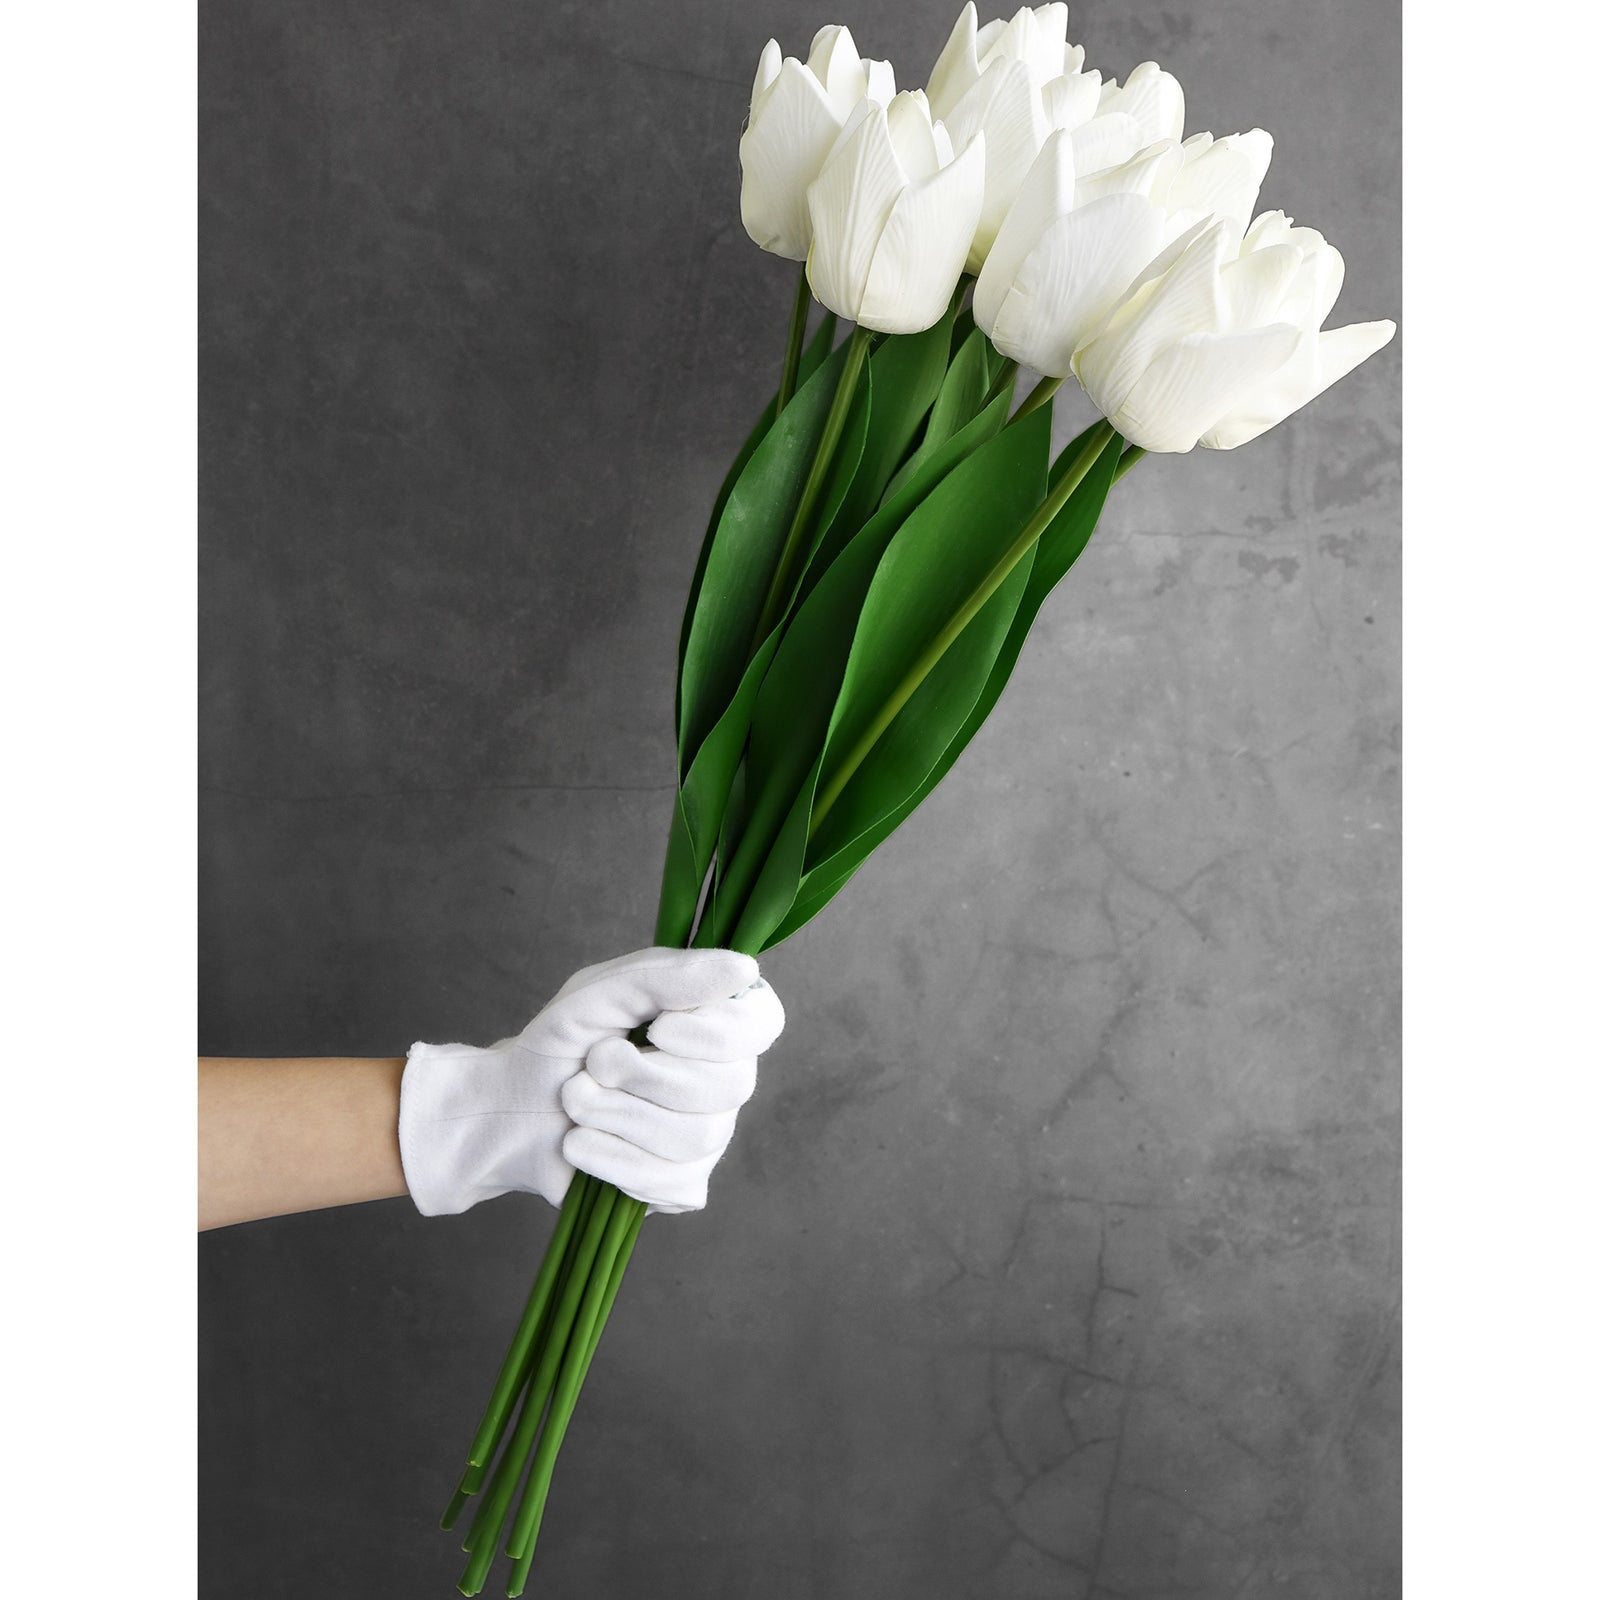 FiveSeasonStuff 10 Long Stems Parrot Tulips Real Touch Artificial Flowers Bouquet [3D Printed] (Floral White)